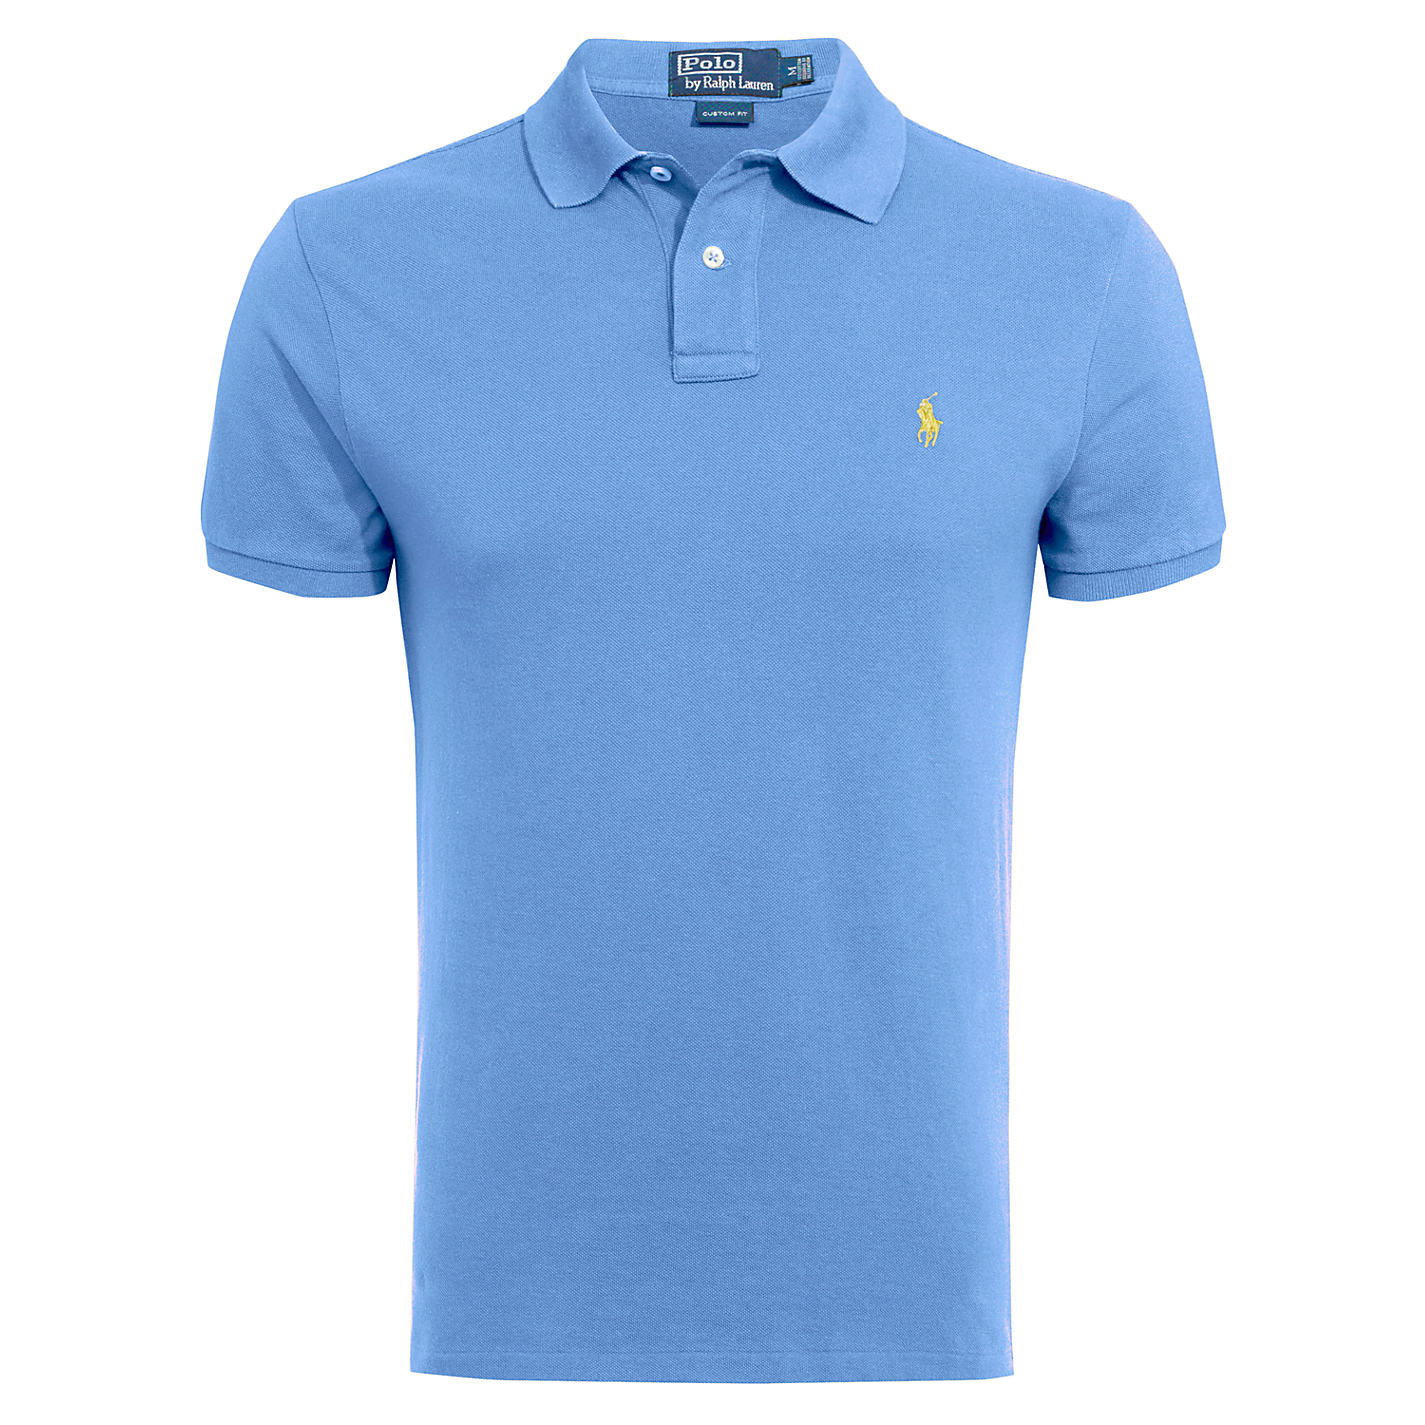 New gents shirts design 2018 for man in pakistan for Mens polo shirts online